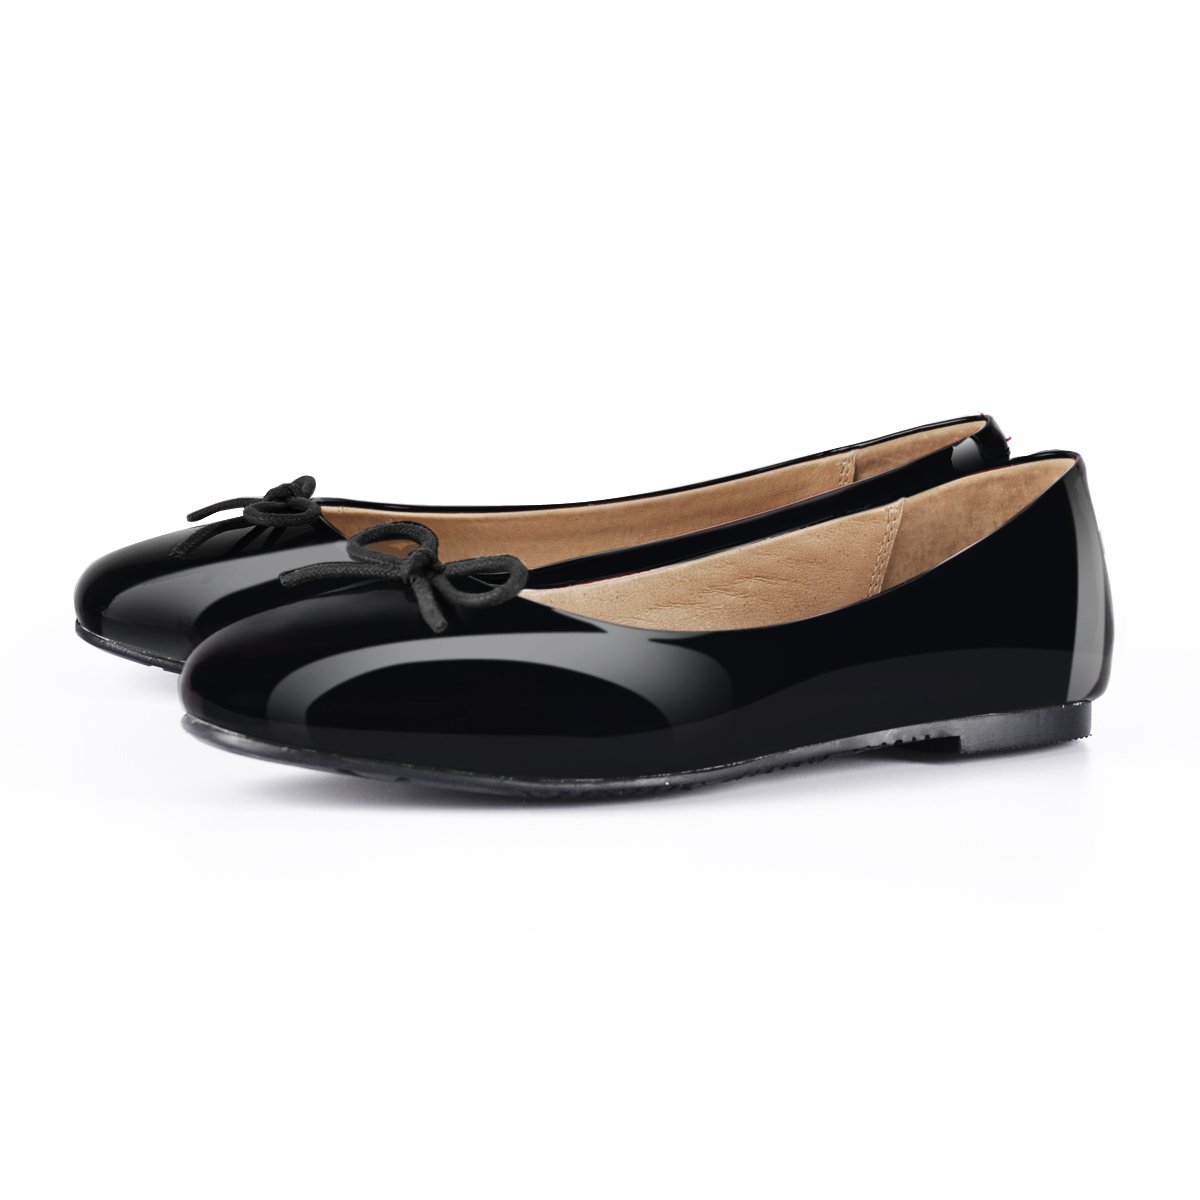 5a40daf8ef Amazon.com | onlymaker Women Round Toe Ballet Flats with Bowknot Slip On  Classic Dress Shoes | Flats